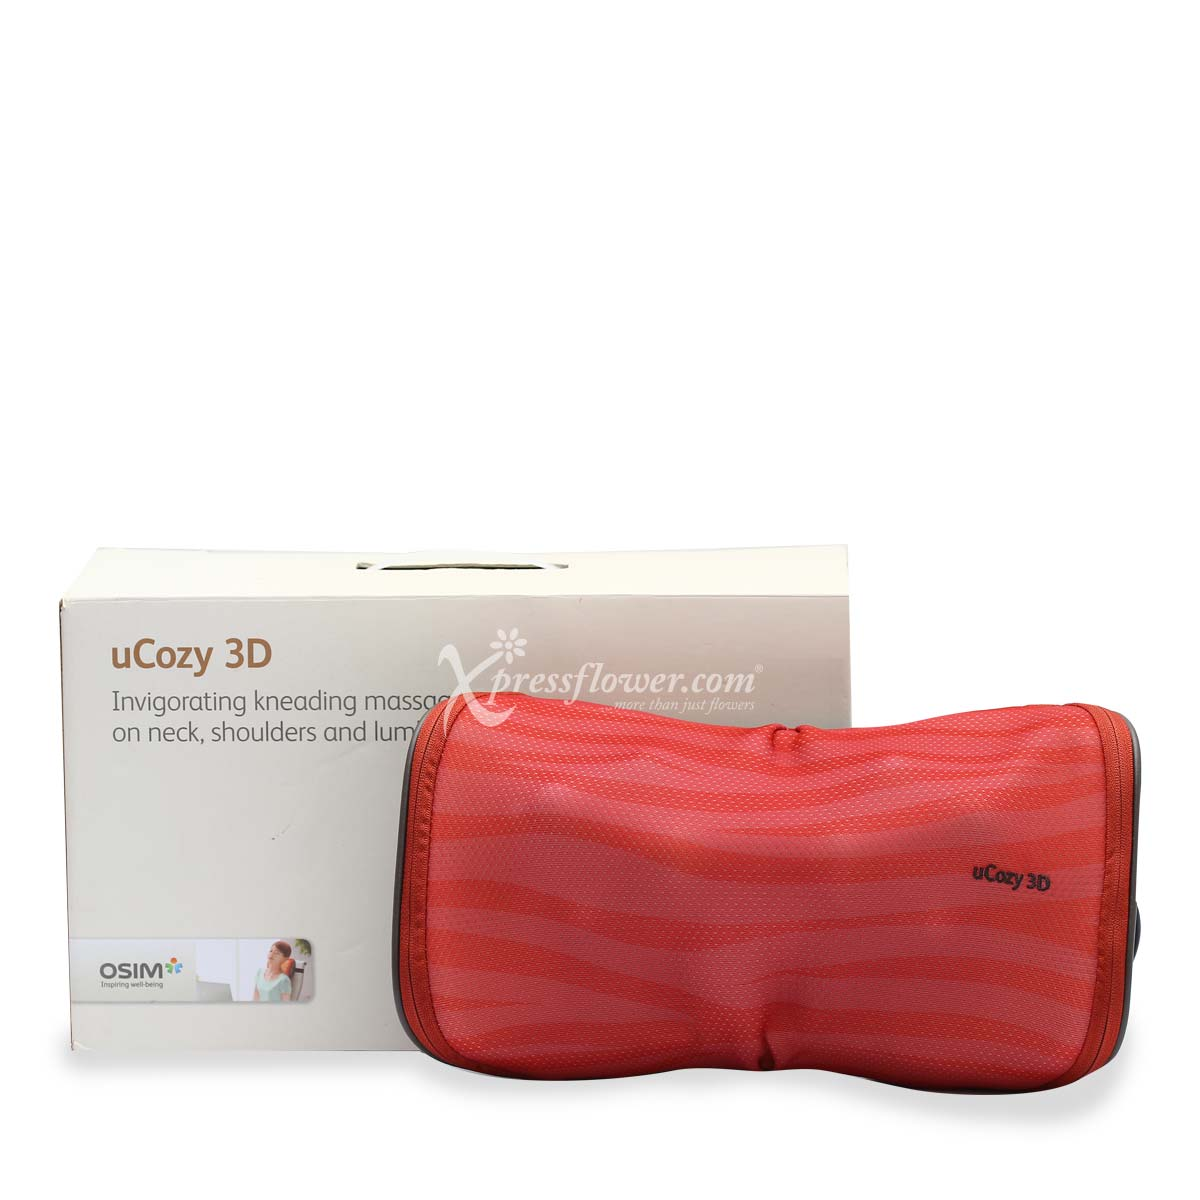 uCozy 3D Neck Massager